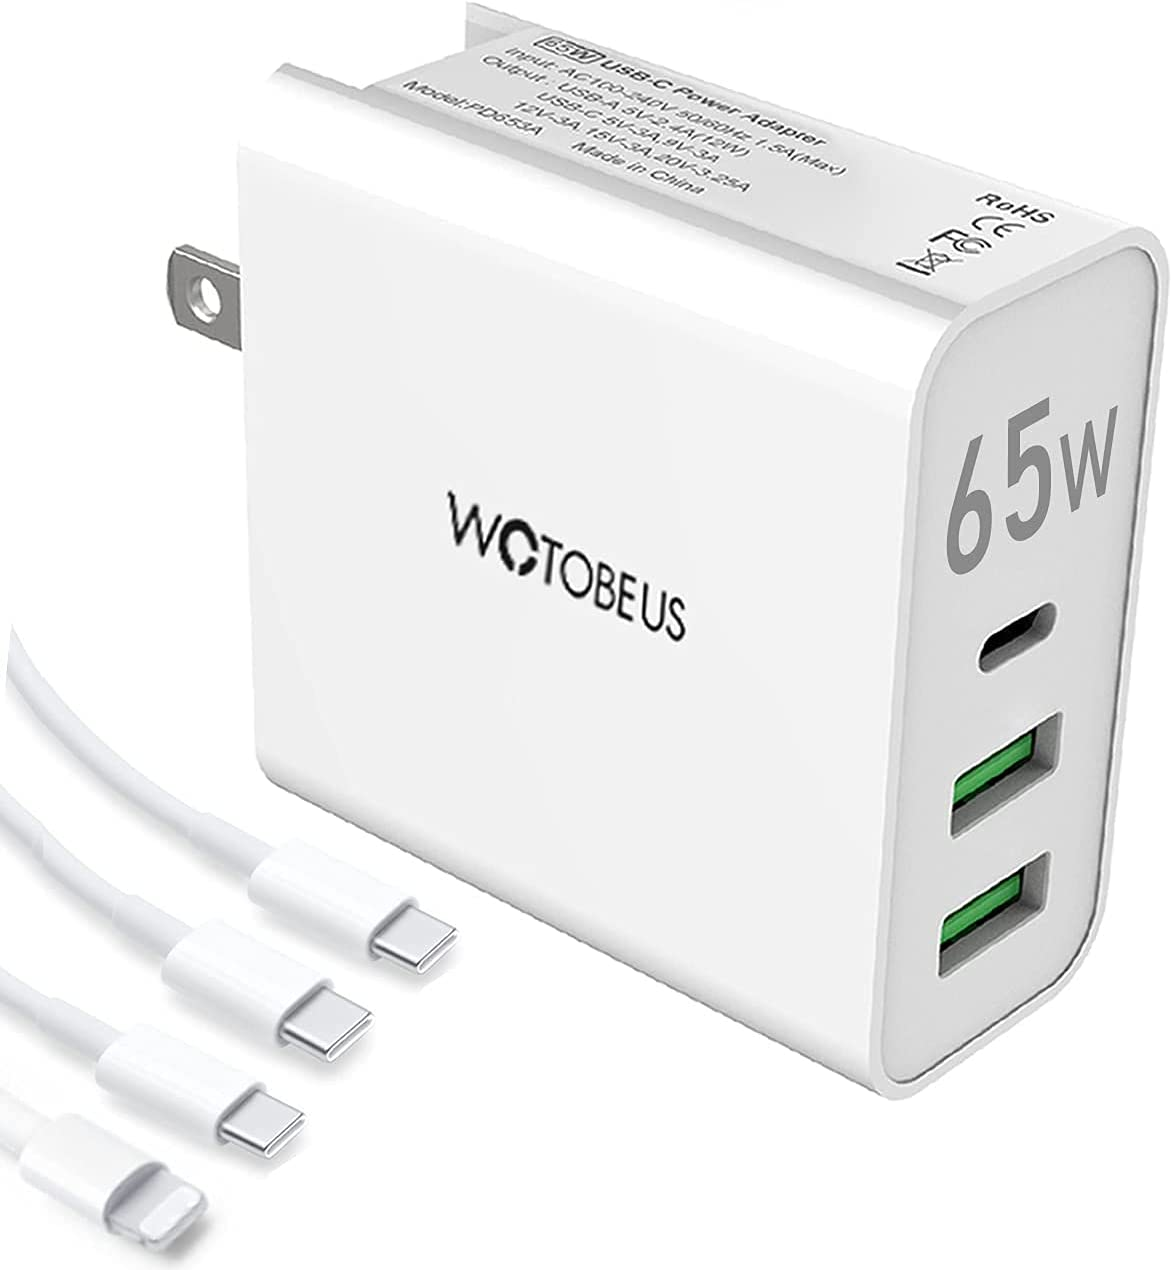 WOTOBEUS 65W USB C Wall Charger Block QC 3.0 12W USB Fast Power Adapter with 5A PD 100W Type C to USBC Cable/USB to iPhone Cord for MacBook Pro,iPad,S9,S10,Note9,Switch,Pixel,XPS ThinkPad,Dell,HP